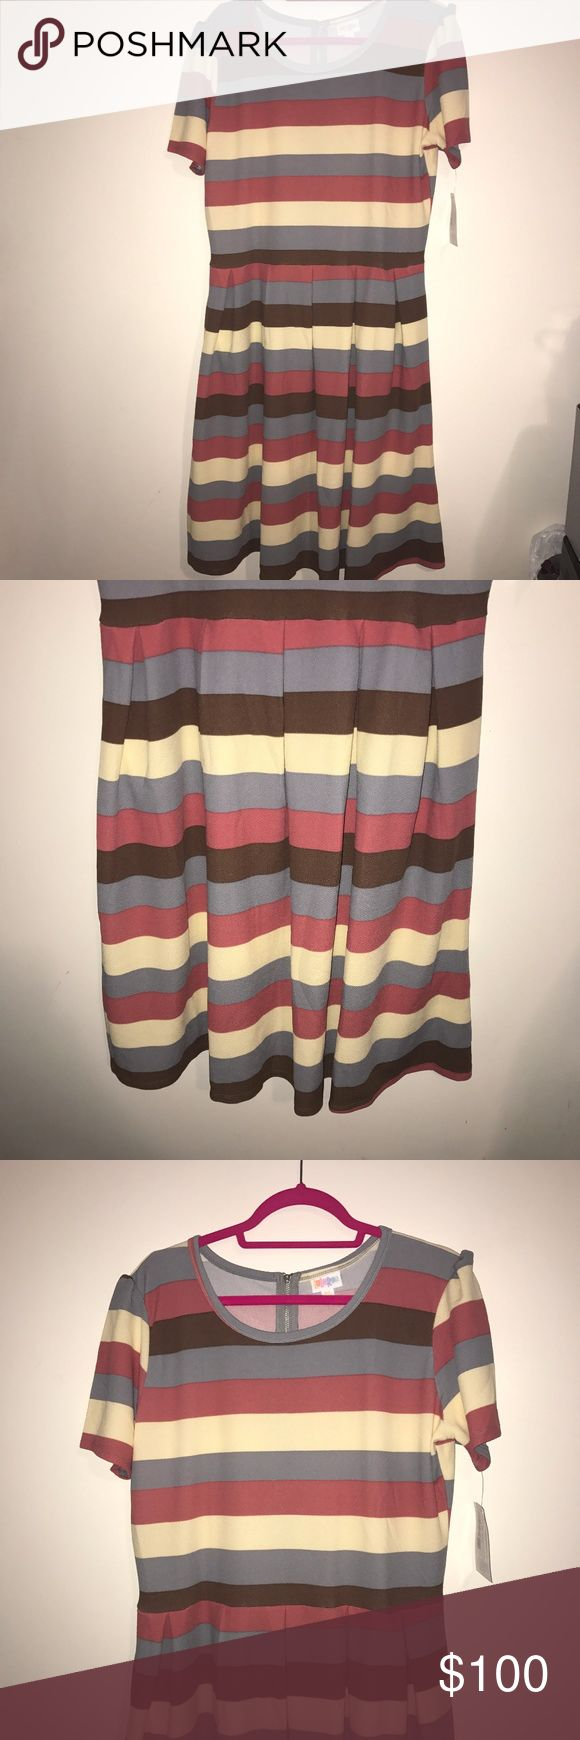 HTF NWT LuLaRoe 3X Amelia Dress Horizontal Stripes SUPER RARE and Hard to Find BNWT LuLaRoe 3X Amelia Dress in Horizontal Stripes! Similar to the dress worn on This is Us!  Stunning in Brown, Blush Pink, Cream, and a light Slate Blue. Perfect for everything from a wedding to brunch to the holidays! Amelia's are thicker material dresses & have pockets, zippered backs, puff sleeves, & box pleated skirts. Gorgeous! Ask me with any questions before purchase! LuLaRoe Dresses